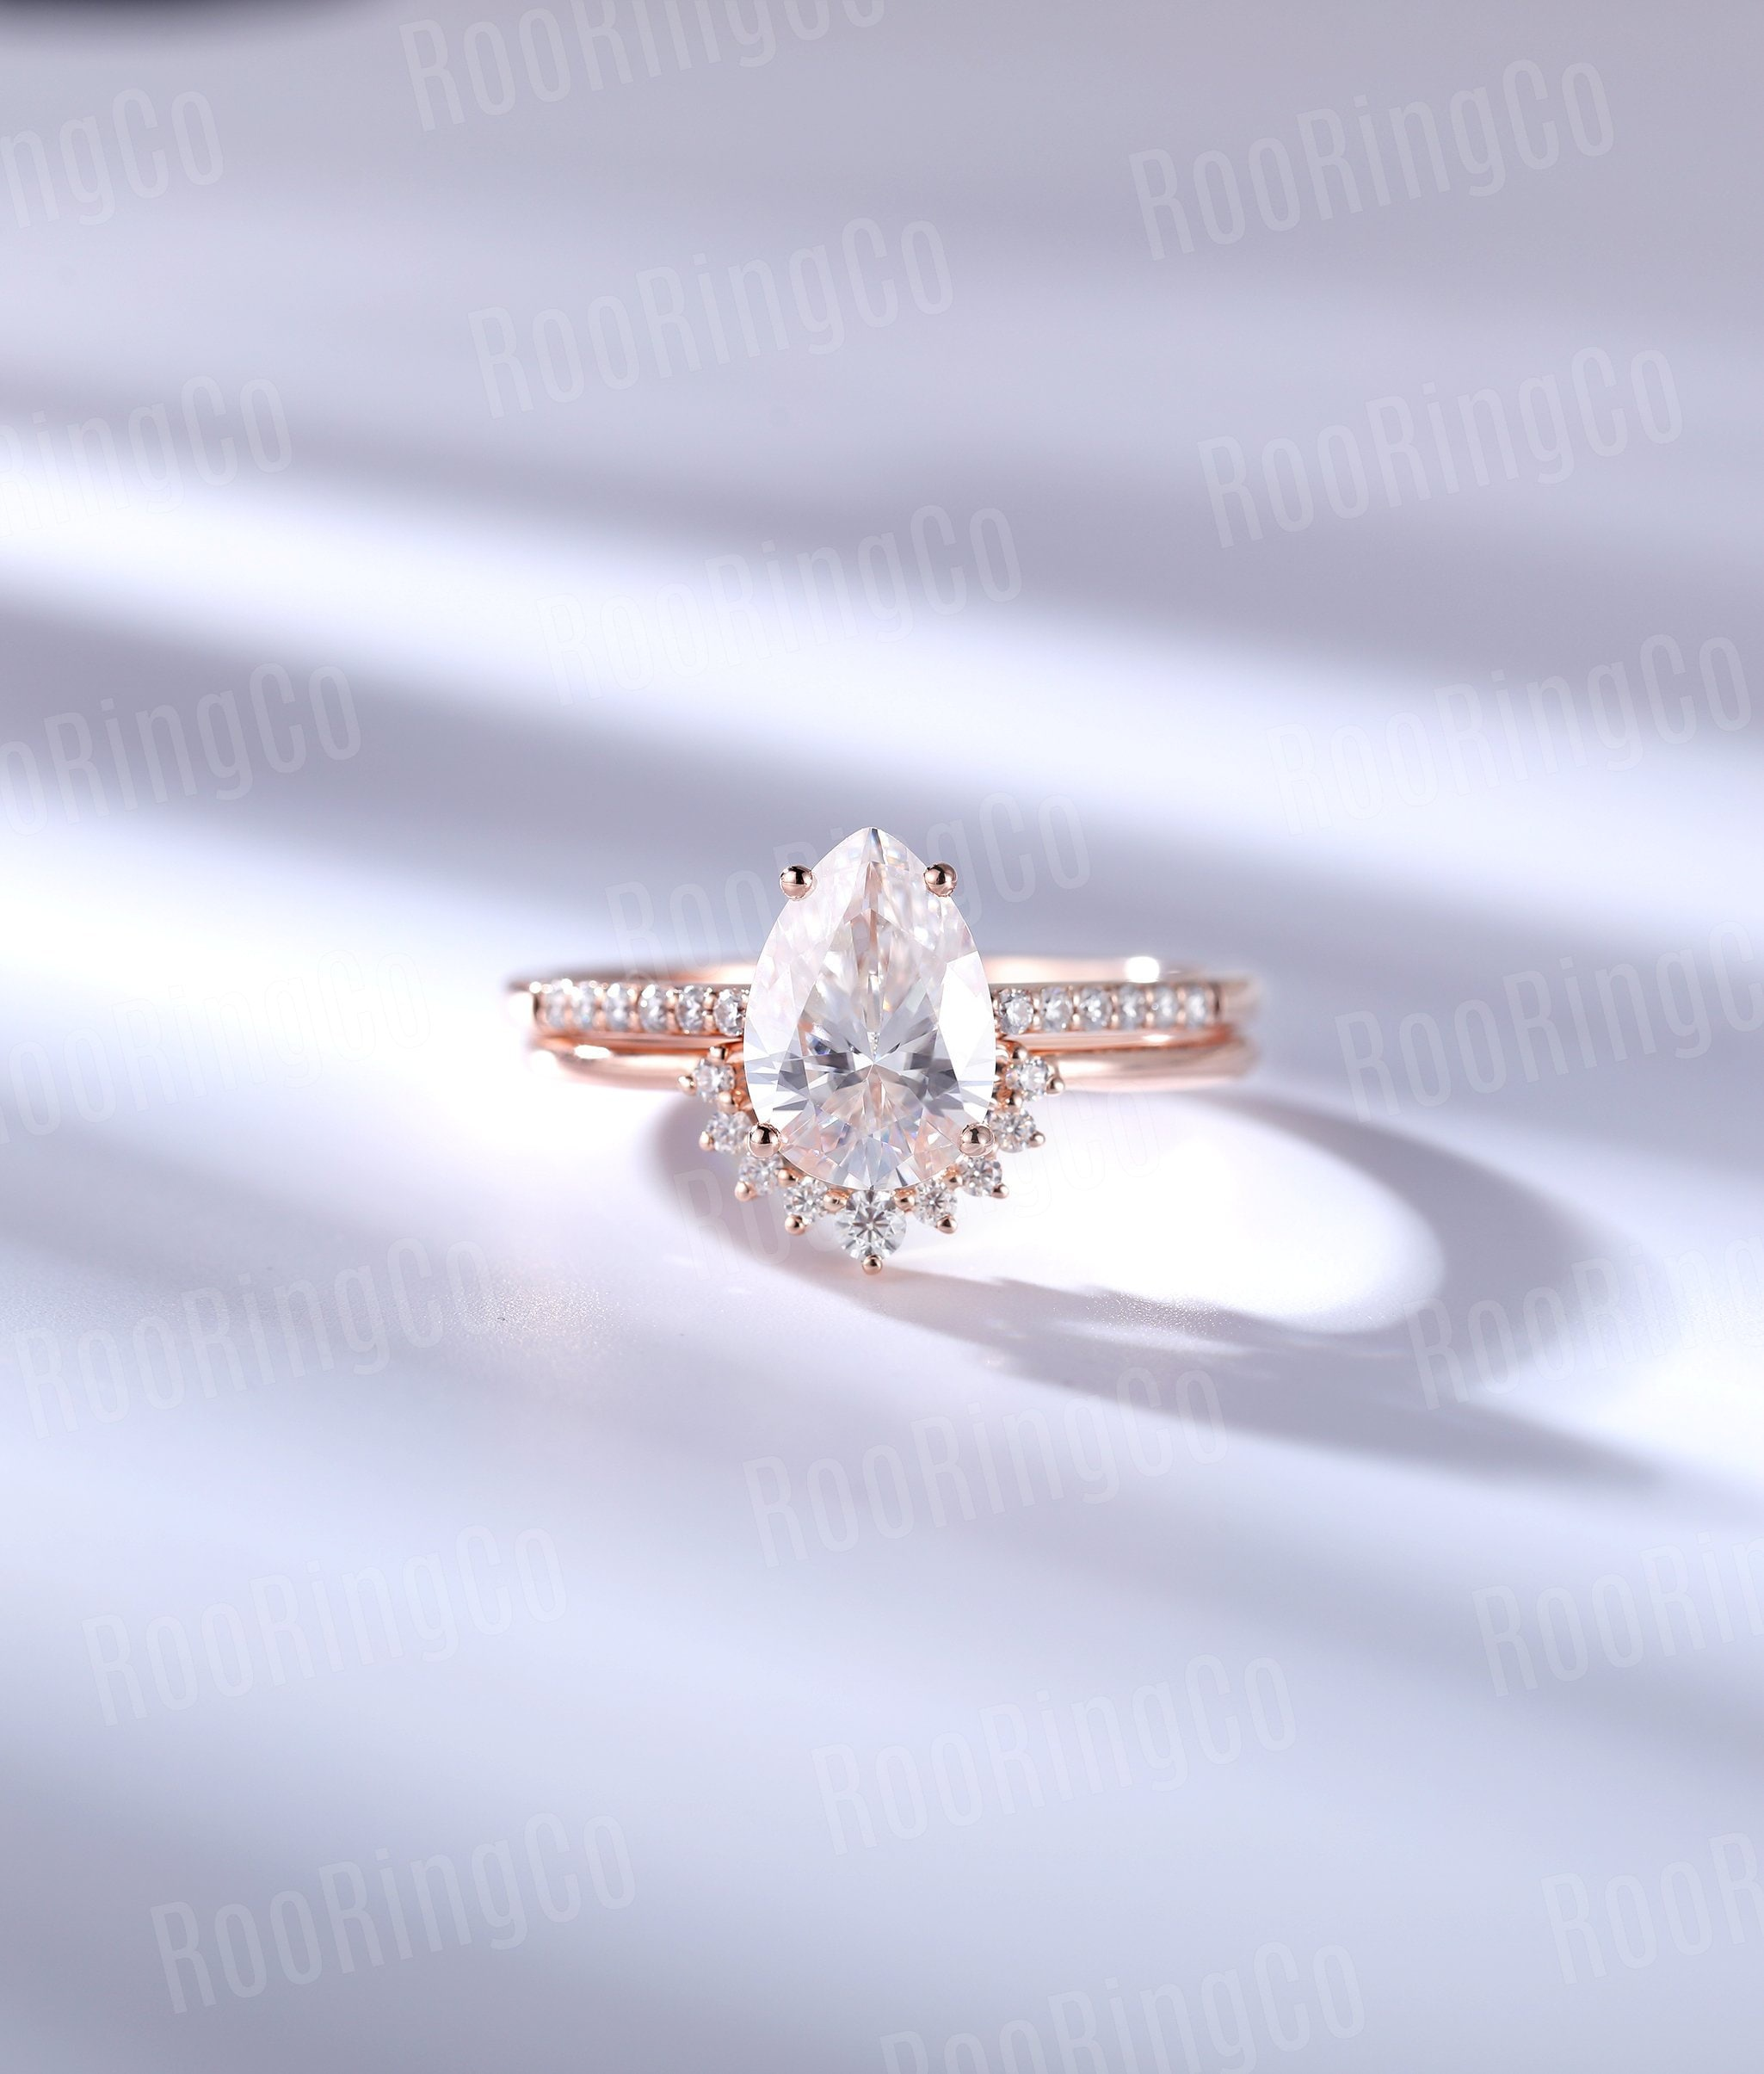 Vintage Moissanite Engagement Ring Set Pear Shaped Prong Art Deco Rose Gold Curved Wedding Band Unique Anniversary